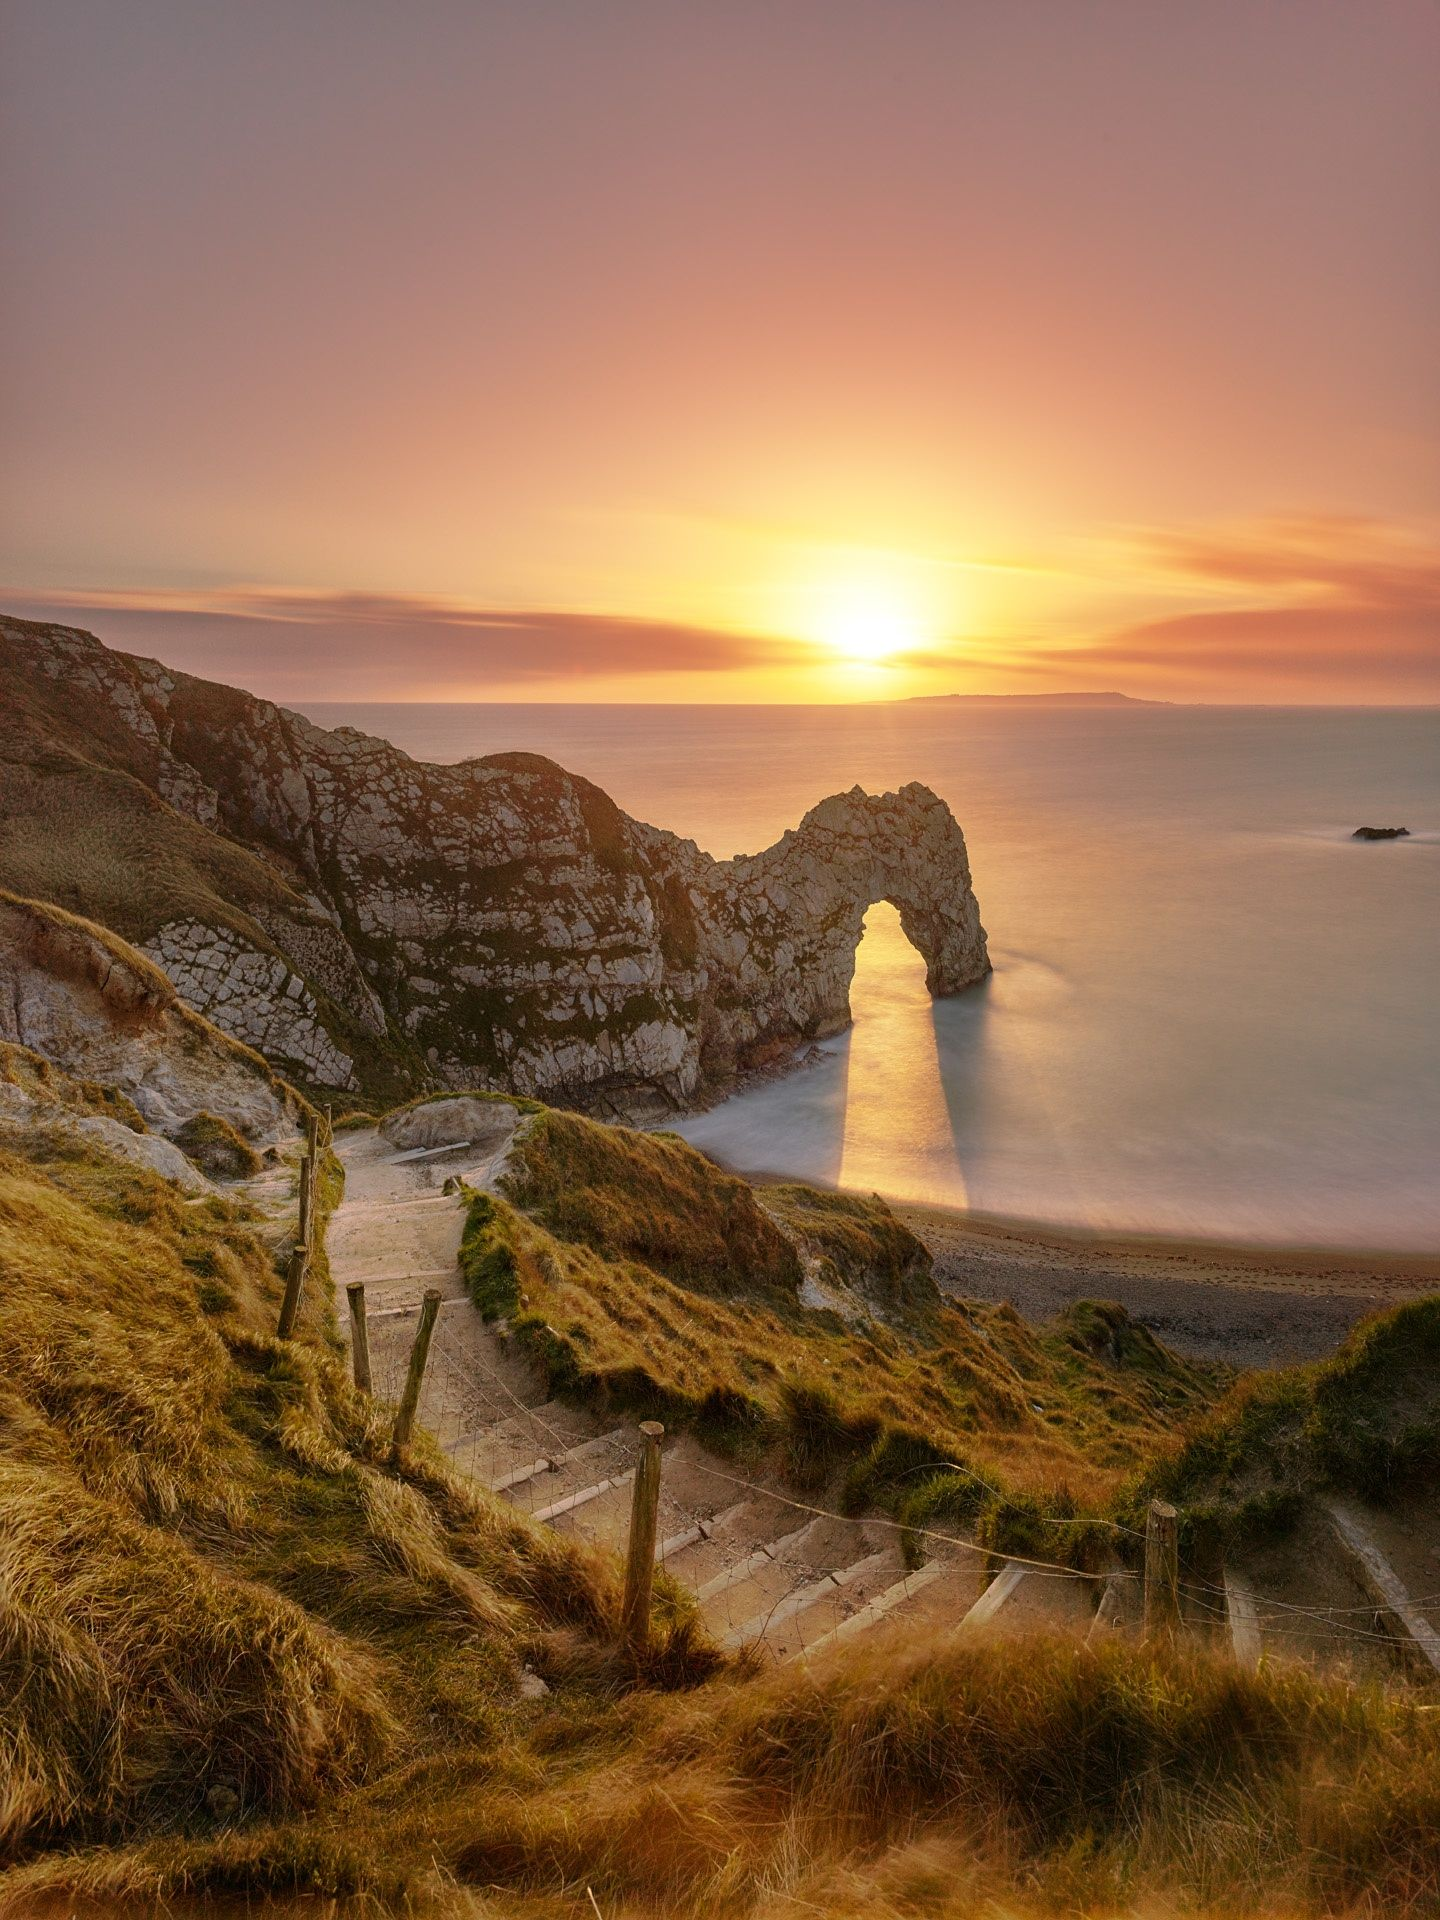 Sunset at Durdle Door - Single exposure (no blending) to stress test the dynamic range of the Sony CMOS sensor. Phase One IQ250 + Rodenstock 23mm HR, 6mm shift downward.  The shadow recovery is as awesome as that of the Nikon D800 (similar Sony sensor technology)!